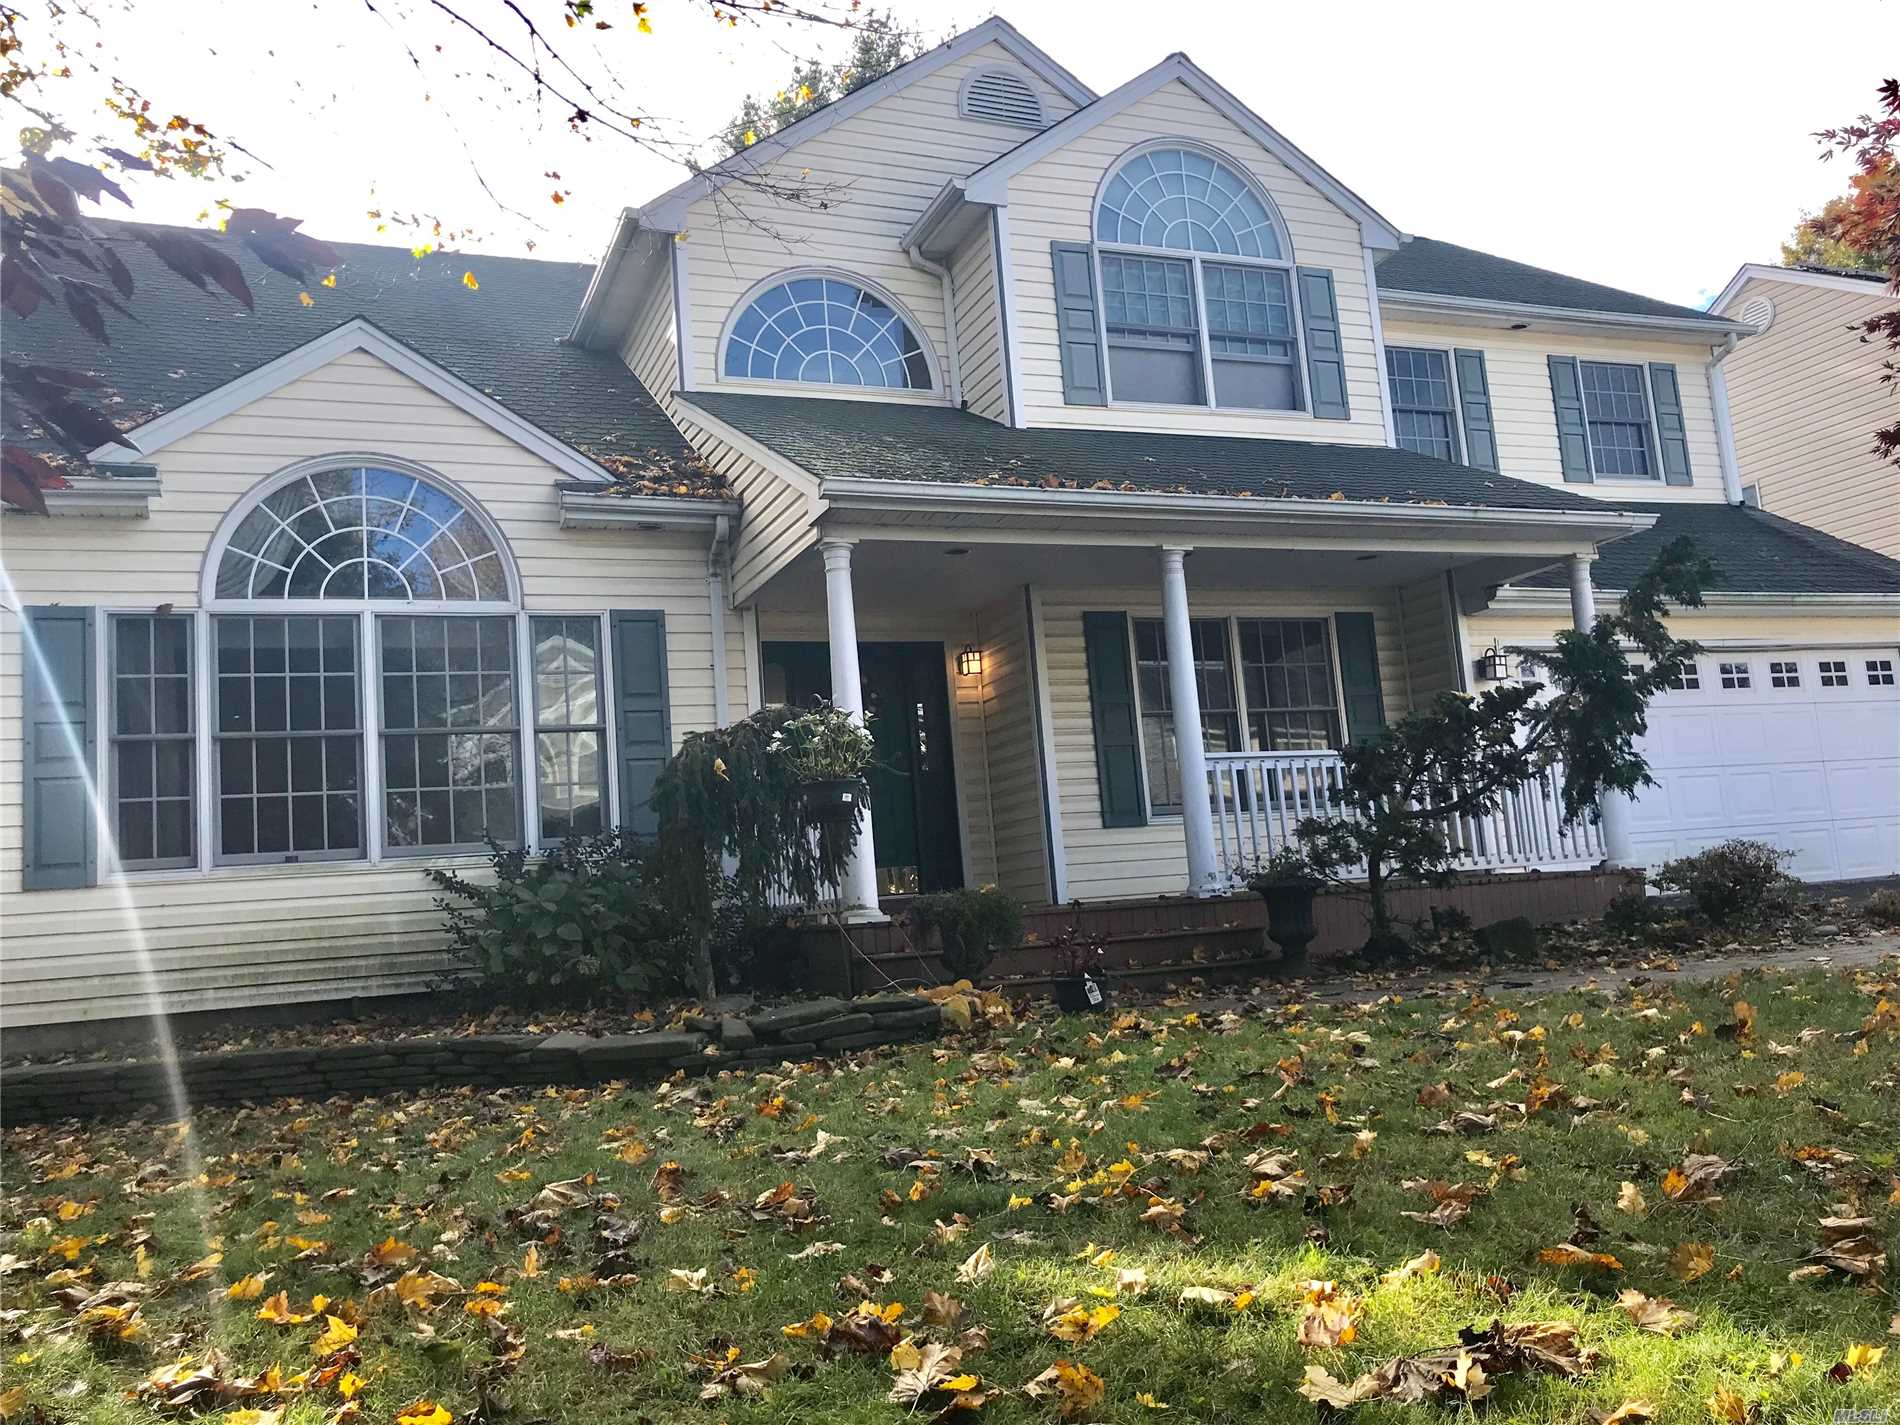 This 5 Bedrooms Colonial House In Plainview Ny. One Of The Most Desirable Towns In Oysterbay. Walk Into A Grand Foyer/ High Ceilings Throughout The Entierre House With A Total Of 5 Bedrooms/Master Suite With Jacuzi/Shower/Walking Closet. 3 Full Bath. 2 Cars Garage. Spacious Kitchen With All Stainless Steel Appliance. Full Finished Basement.